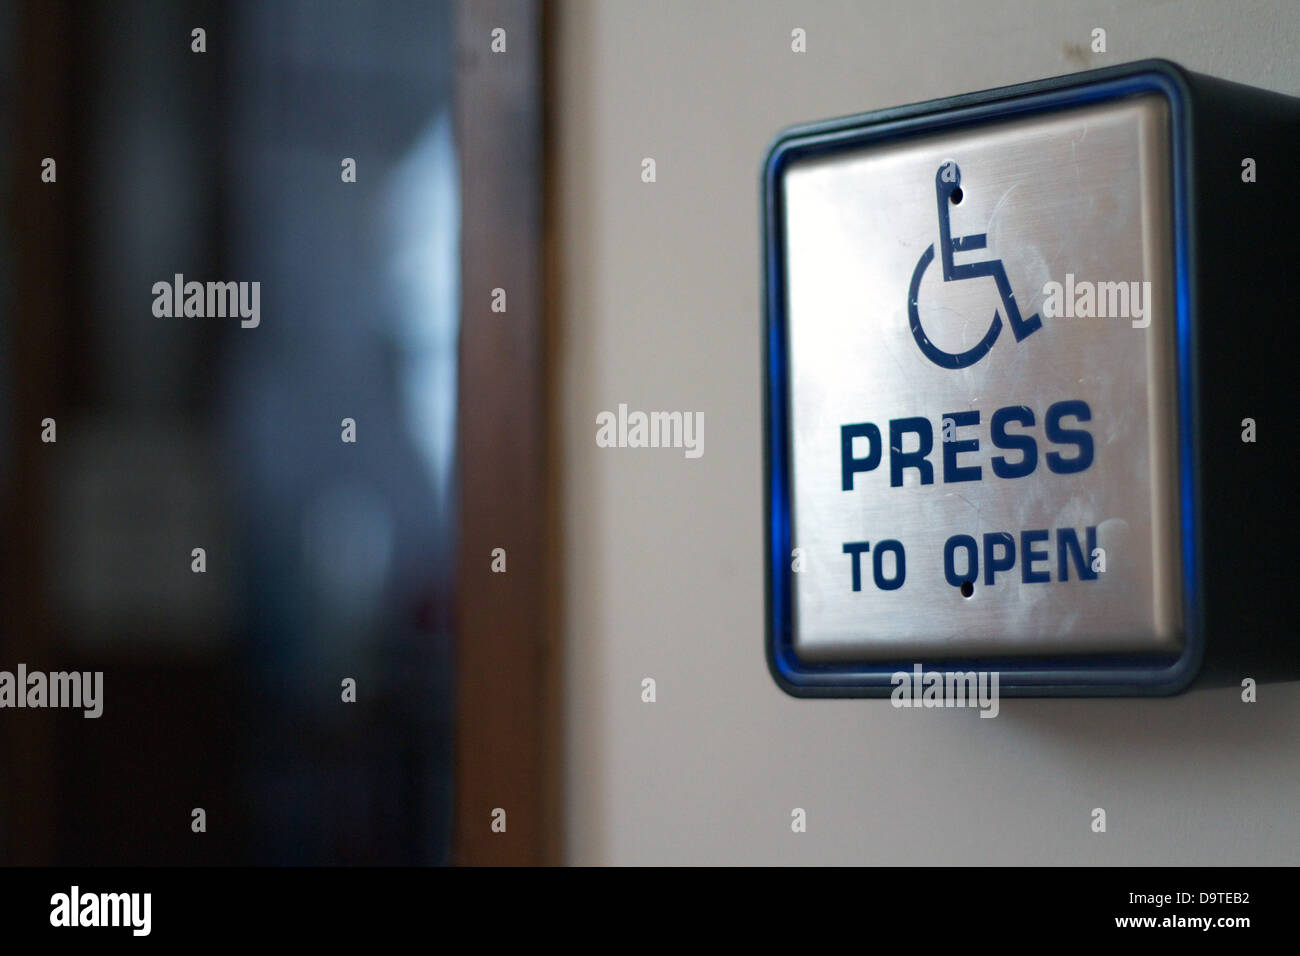 Press to open disabled access automatic door panel - Stock Image